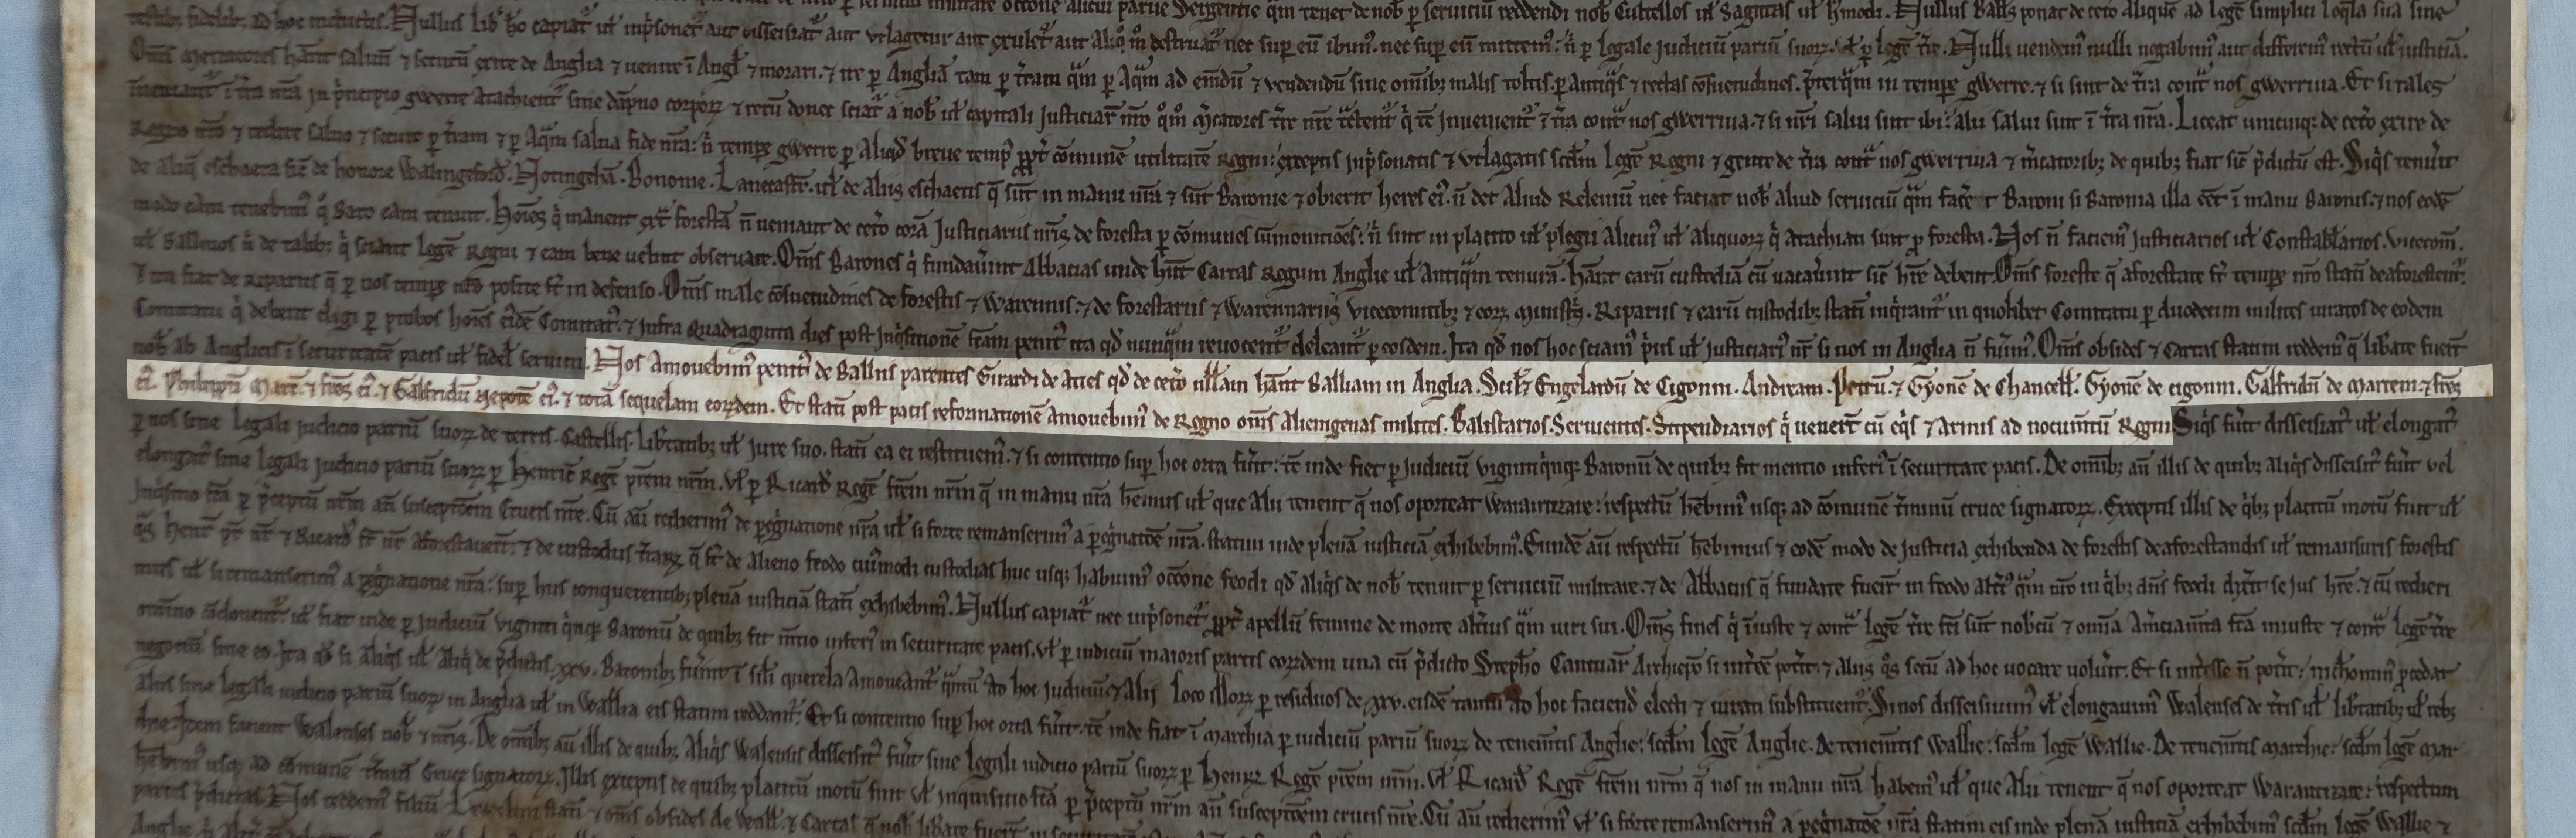 Clauses 50 and 51 of Magna Carta 1215